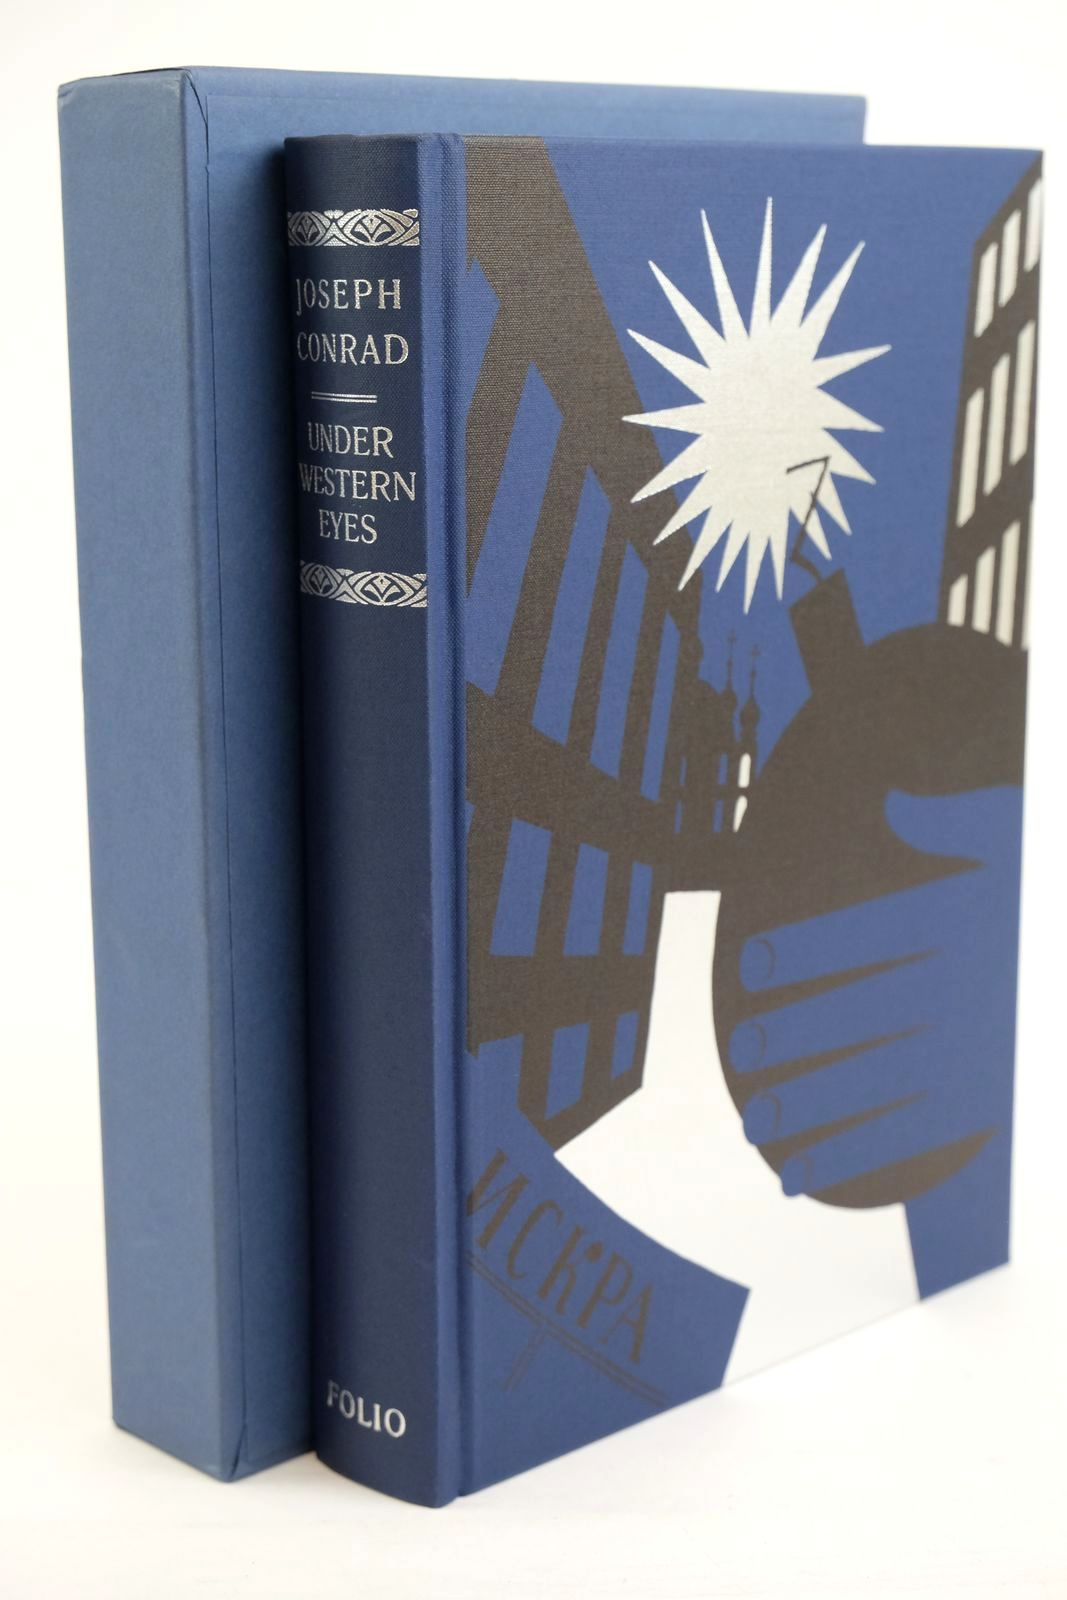 Photo of UNDER WESTERN EYES written by Conrad, Joseph Meyers, Jeffrey illustrated by Mosley, Francis published by Folio Society (STOCK CODE: 1320393)  for sale by Stella & Rose's Books